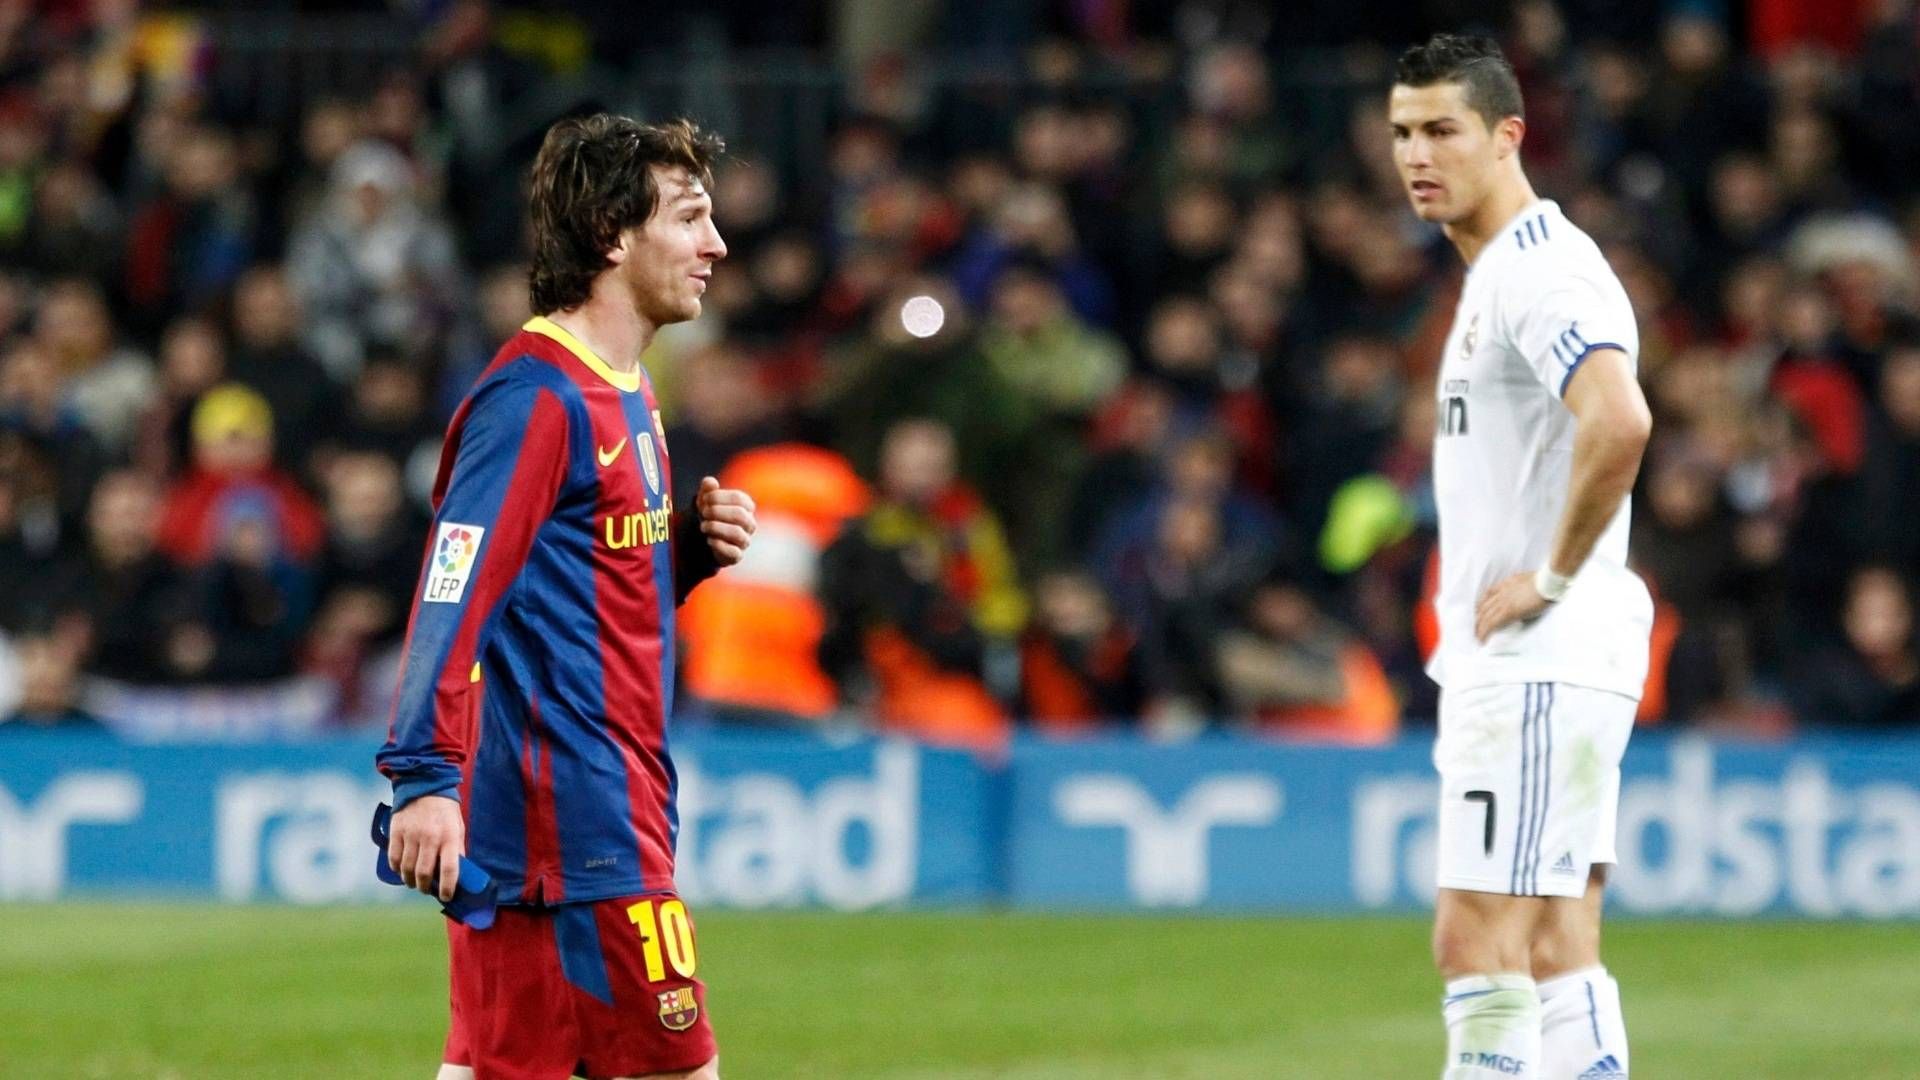 Cristiano ronaldo vs messi wallpapers 2015 wallpaper cave cristiano ronaldo wallpaper 2013 hd background 9 hd wallpapers voltagebd Choice Image